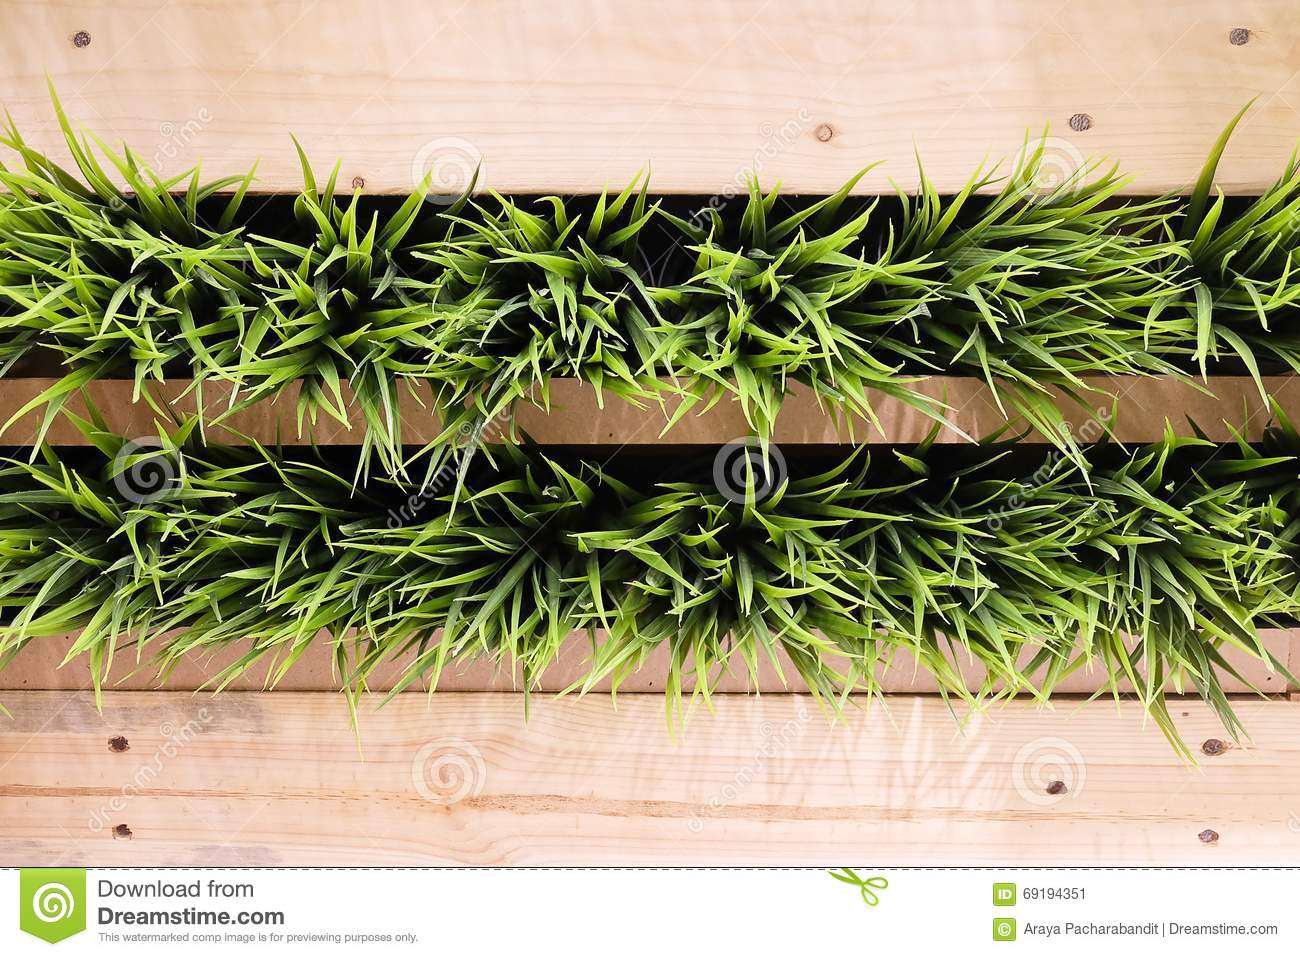 wooden wall with hang green artificial plants artificial plants for office decor